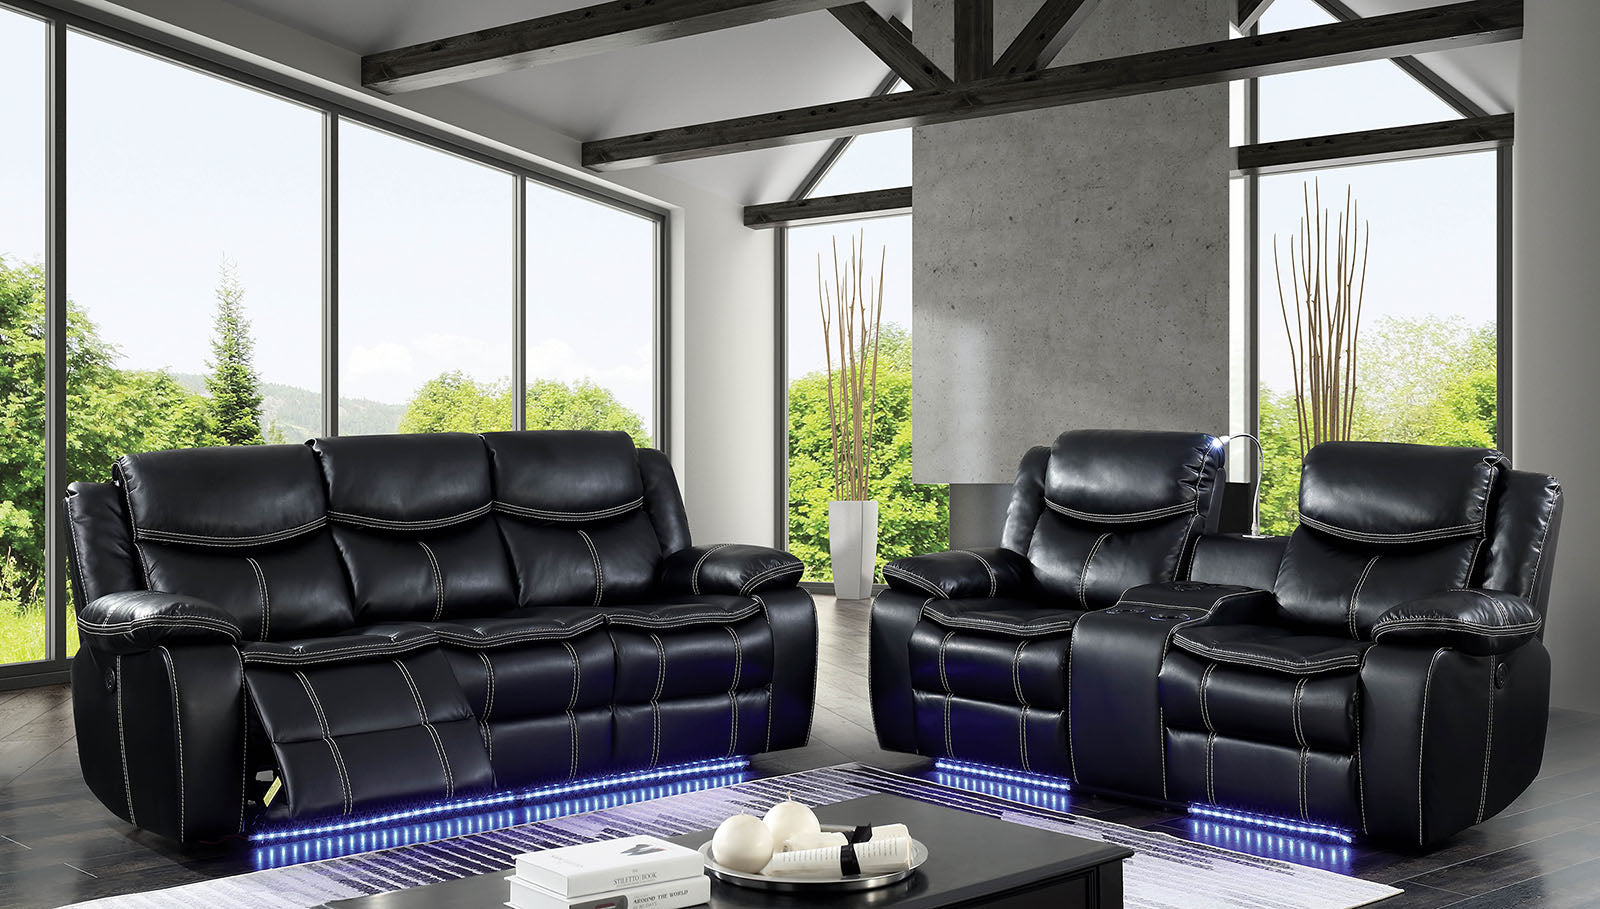 RONSON BLACK FAUX LEATHER POWER RECLINING SOFA W/LED STRIP